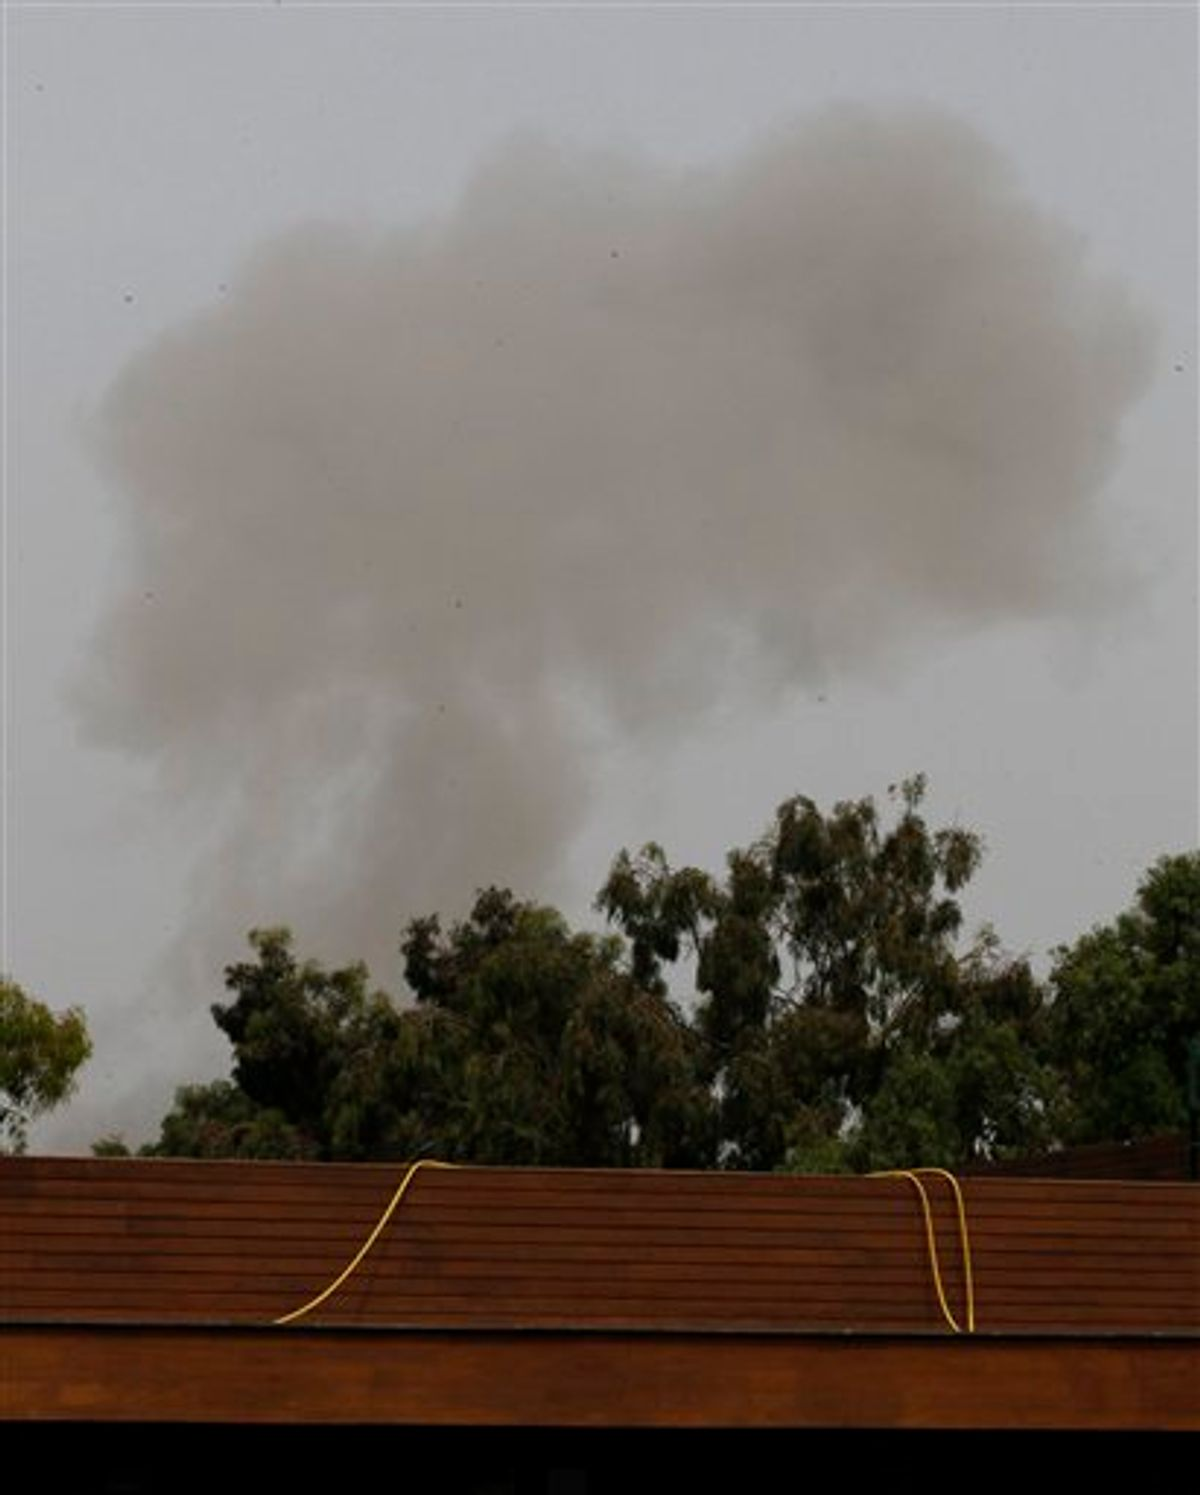 A smoke plume rises into the sky over Tripoli, Libya, on Tuesday, June 7, 2011 following an airstrike. Low-flying NATO military craft have struck seven times in loud, banging succession over the Libyan capital Tripoli. The strikes occurred Tuesday morning, marking an increase in NATO pressure on the regime of Moammar Gadhafi. (AP Photo/Ivan Sekretarev) (AP)